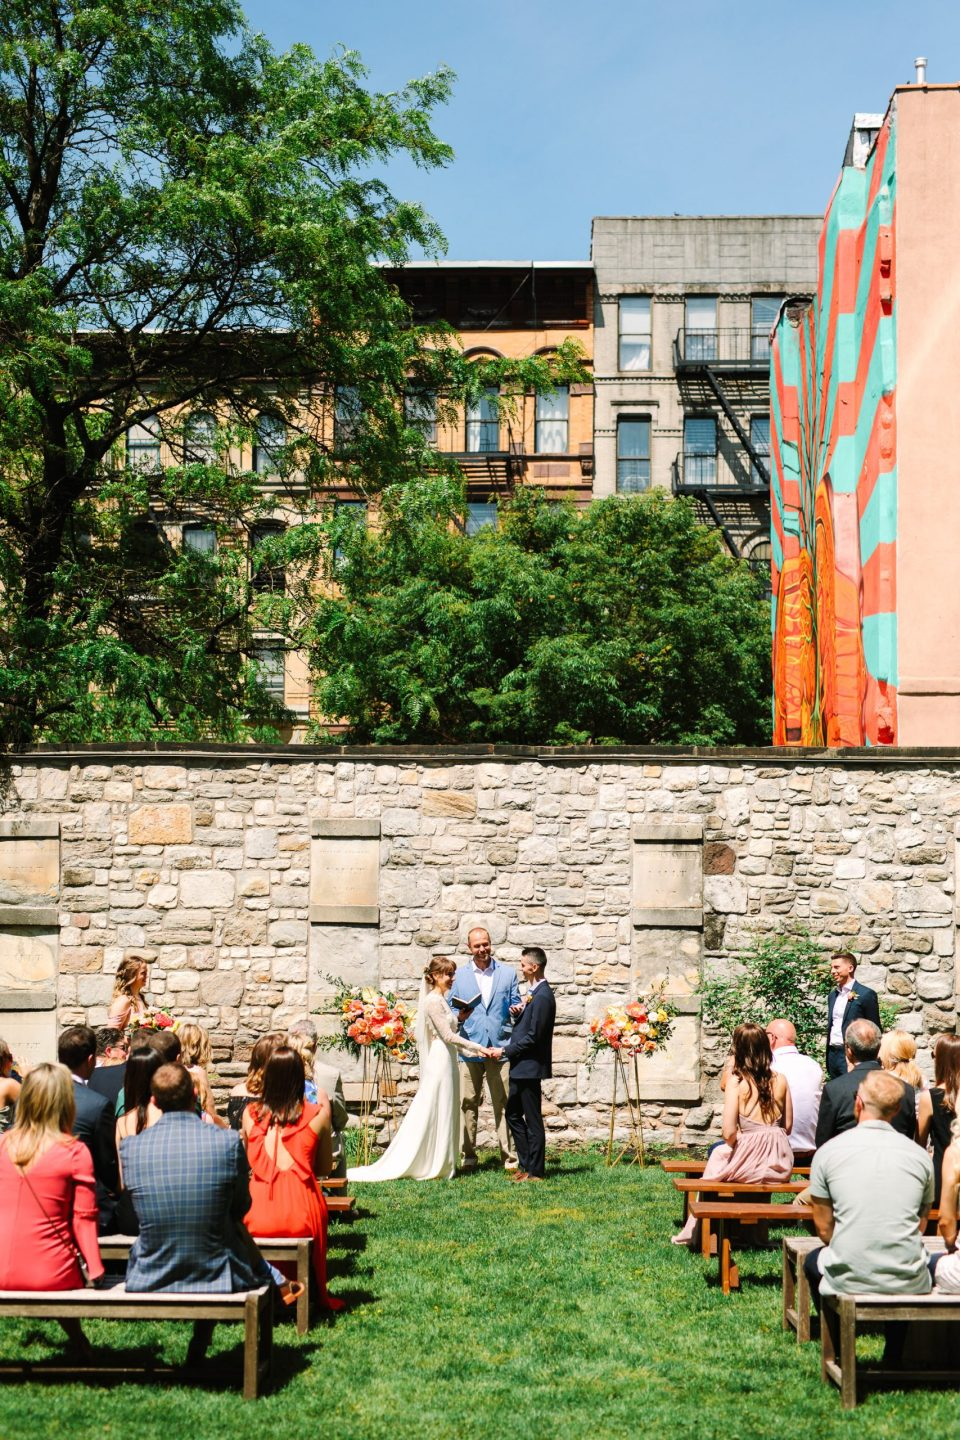 Wedding ceremony in NYC by Mary Costa Photography